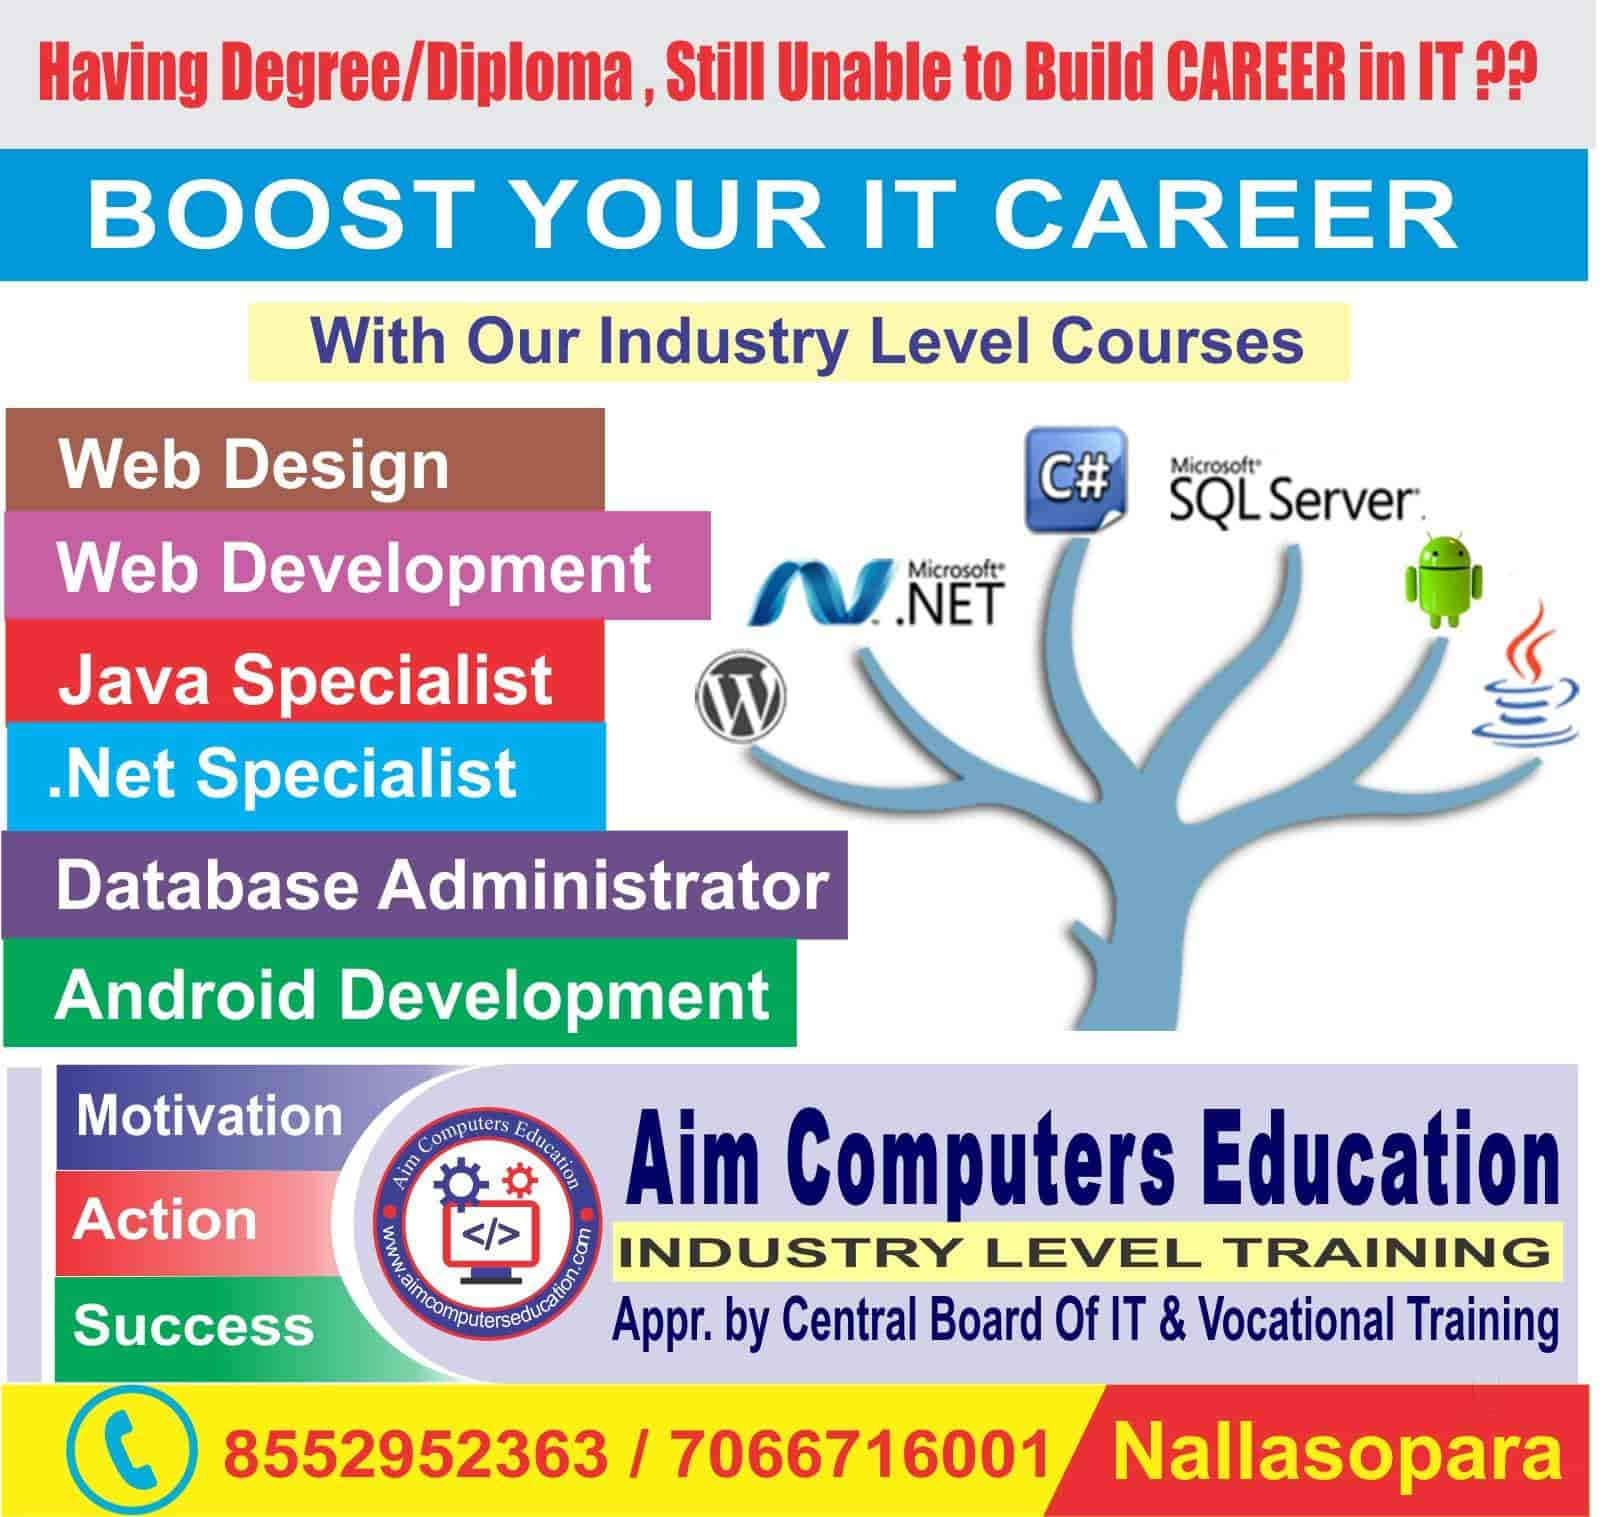 Aim Computers Education Photos Nalasopara East Palghar Pictures Images Gallery Justdial